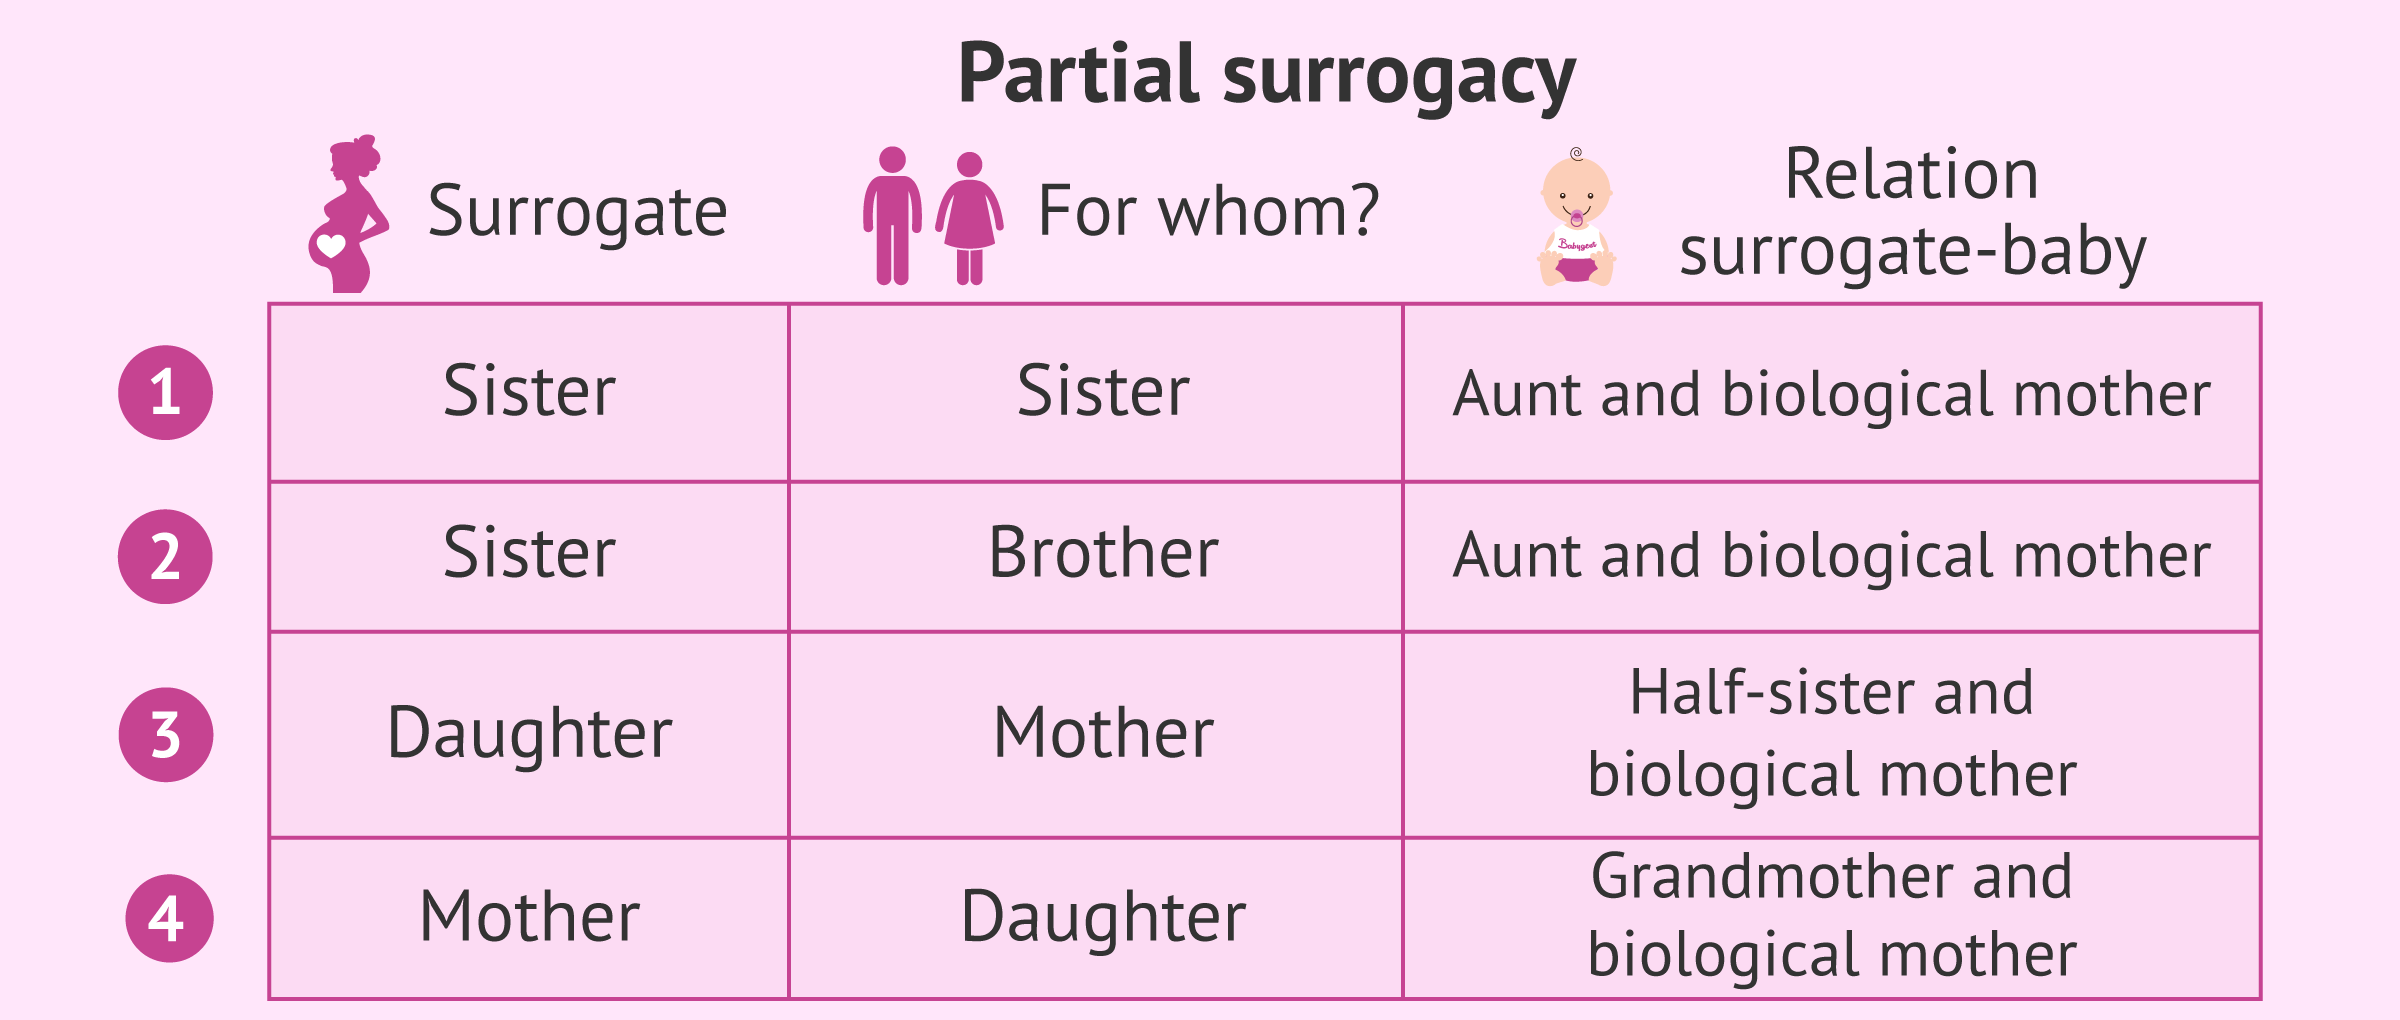 Surrogacy among family members: Overview about possible combinations